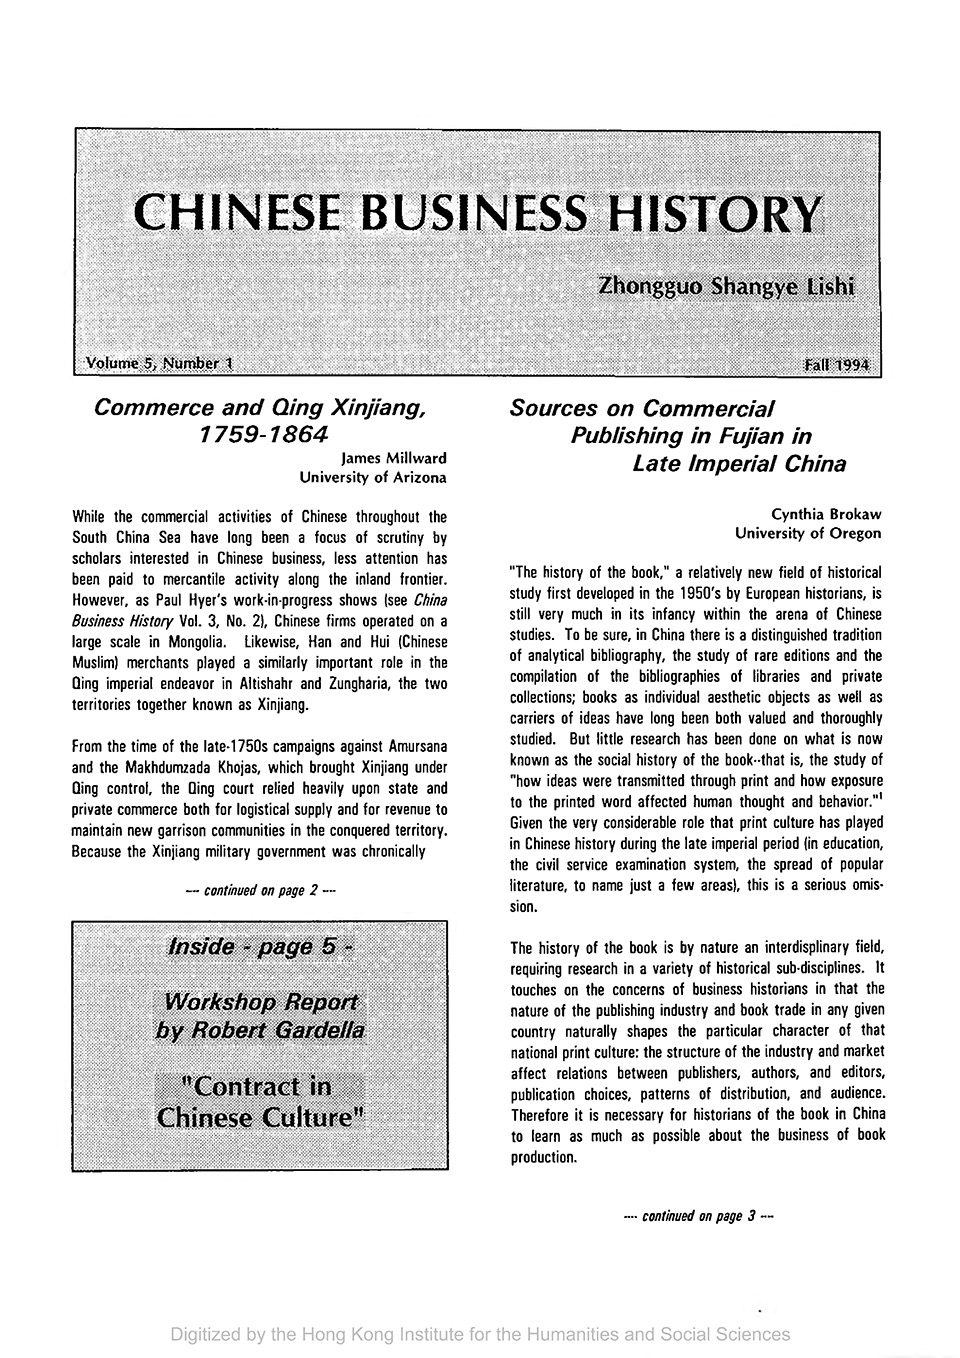 Cover of Chinese Business History Journal Volume 5, Number 1